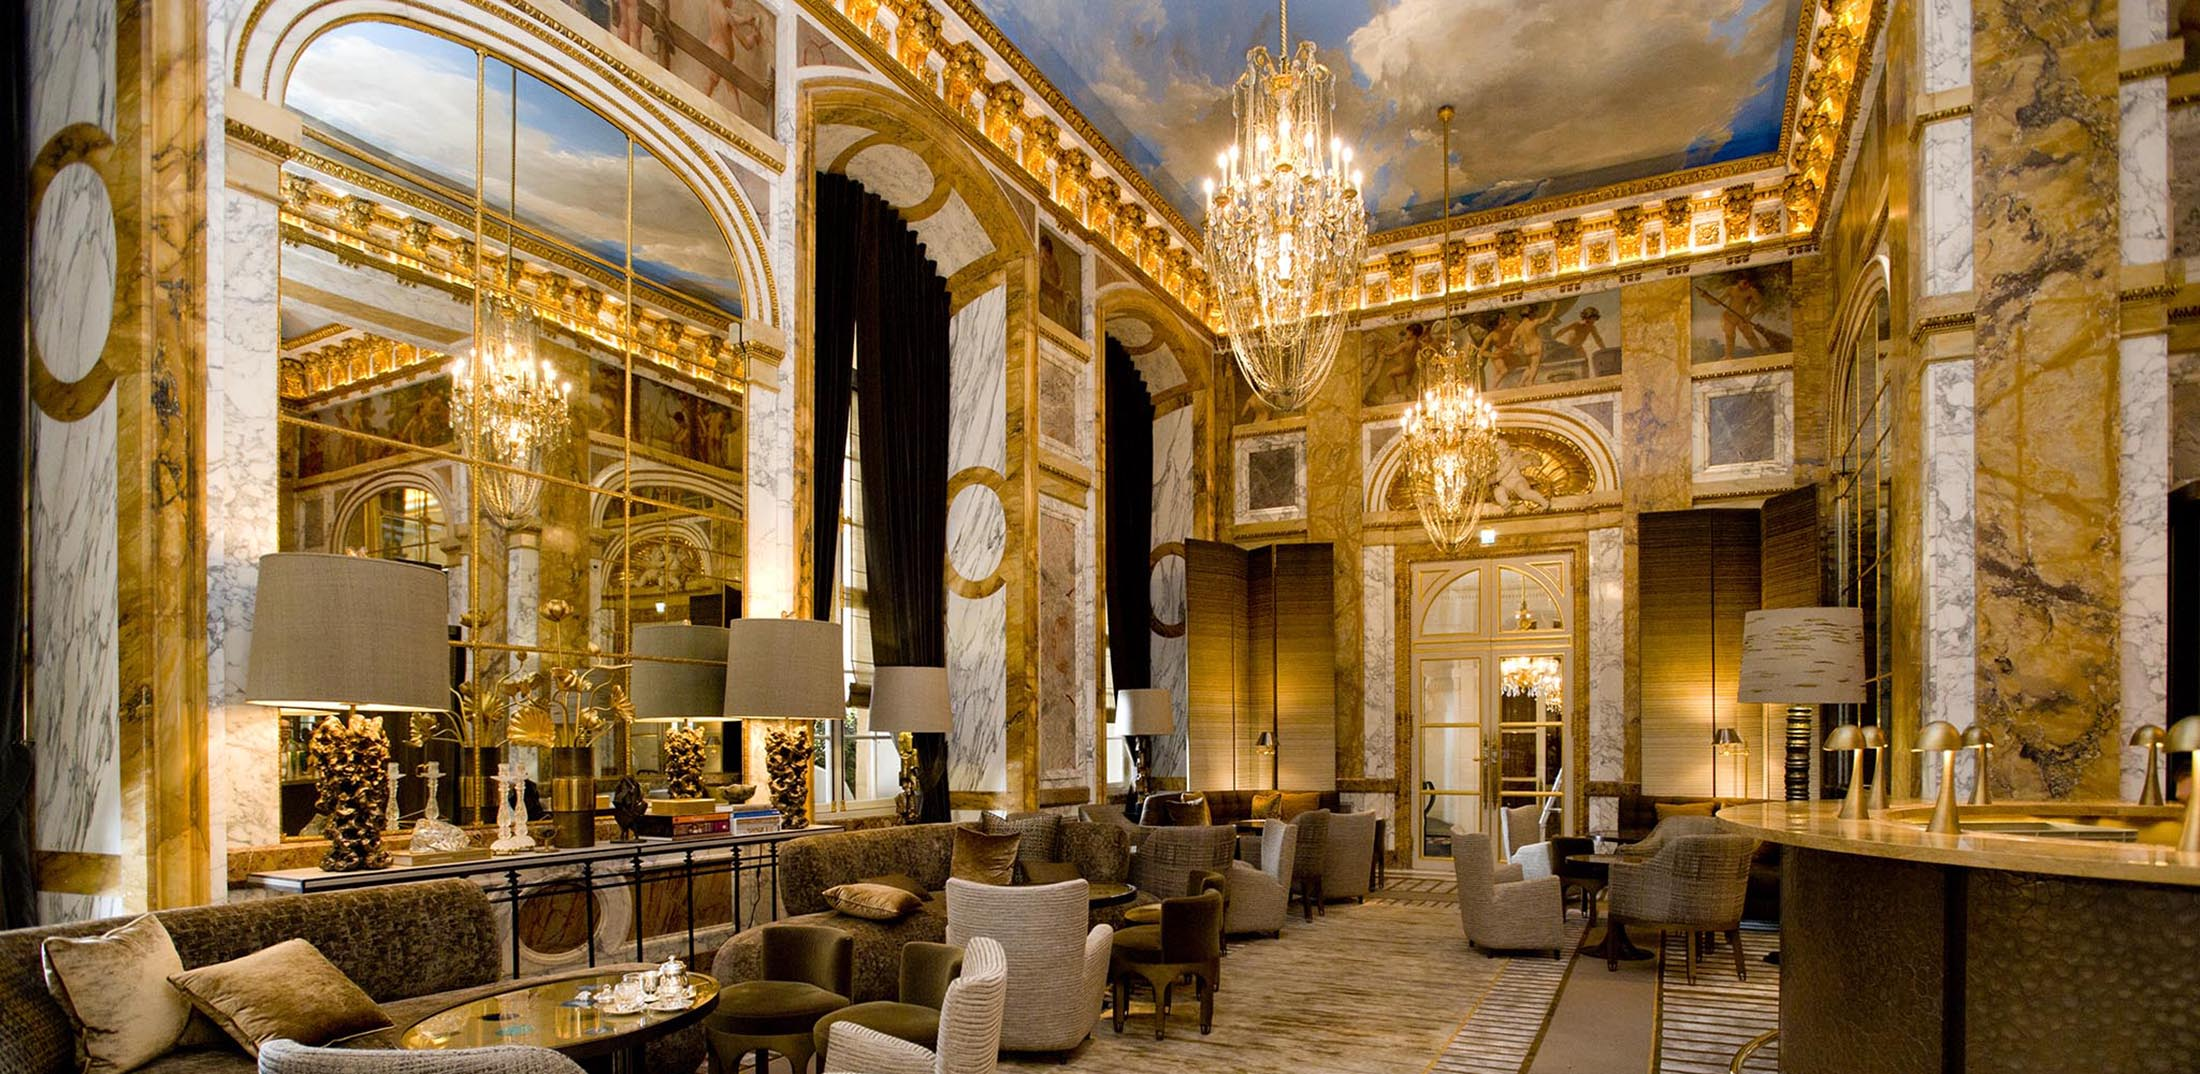 3 gorgeous new design hotels to check out now galerie for Designhotel 21